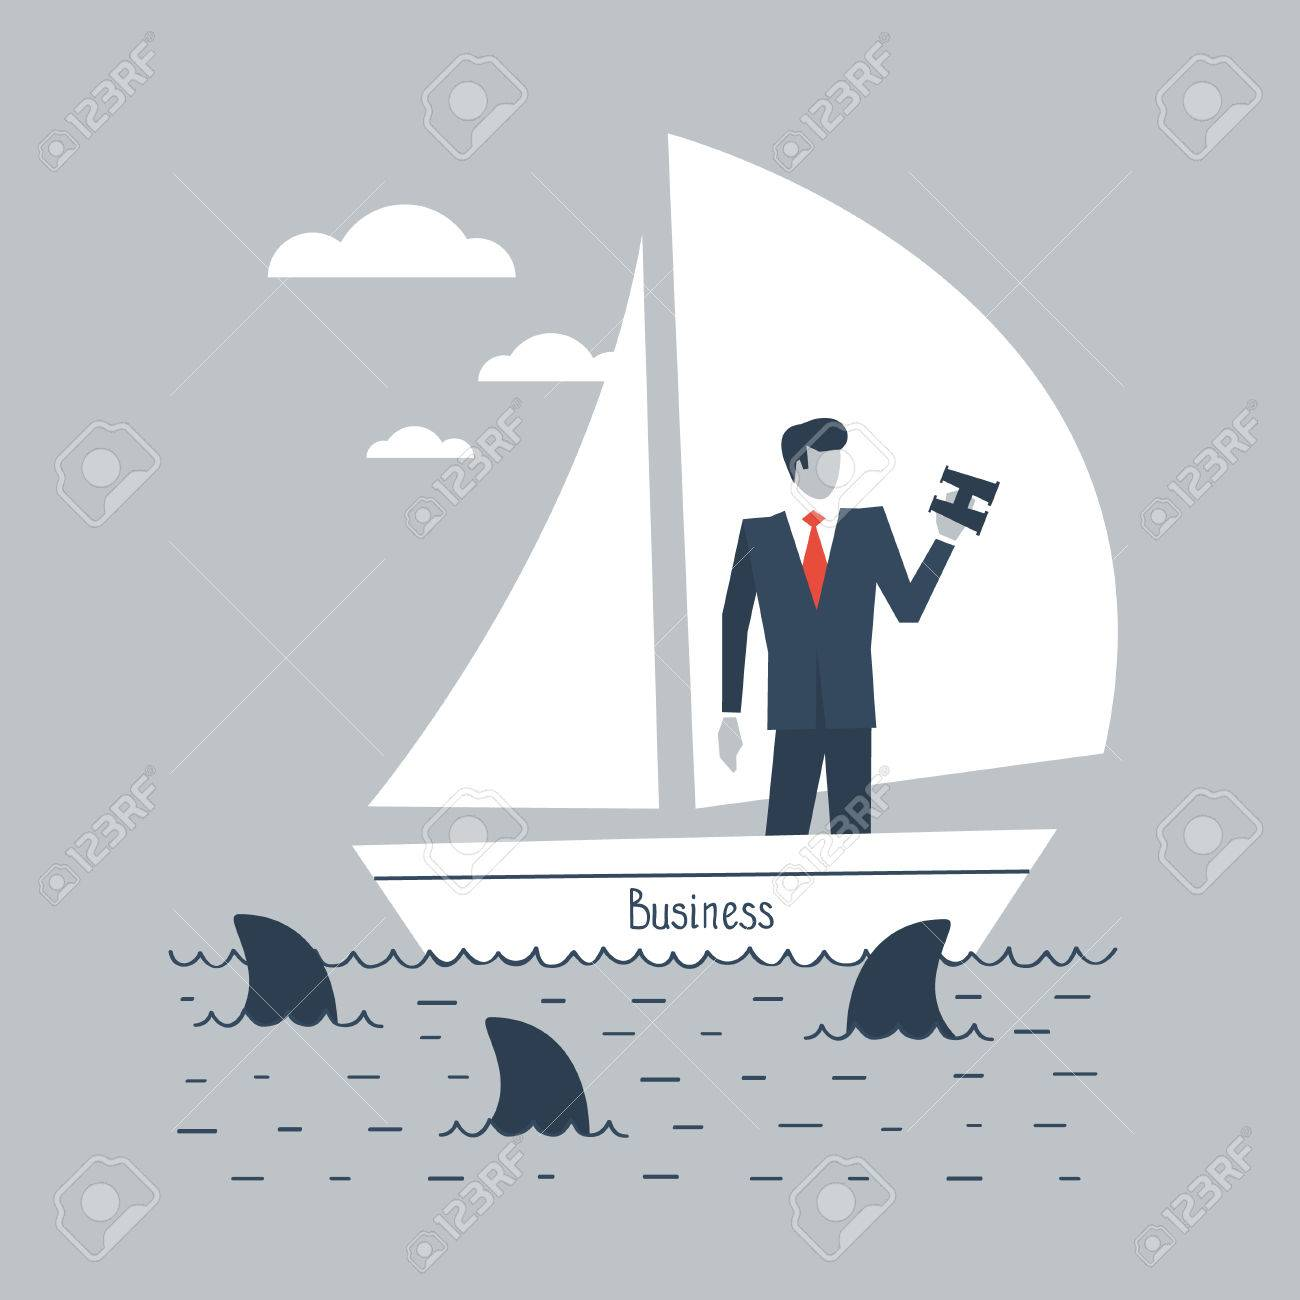 A businessman steering business - 49589411